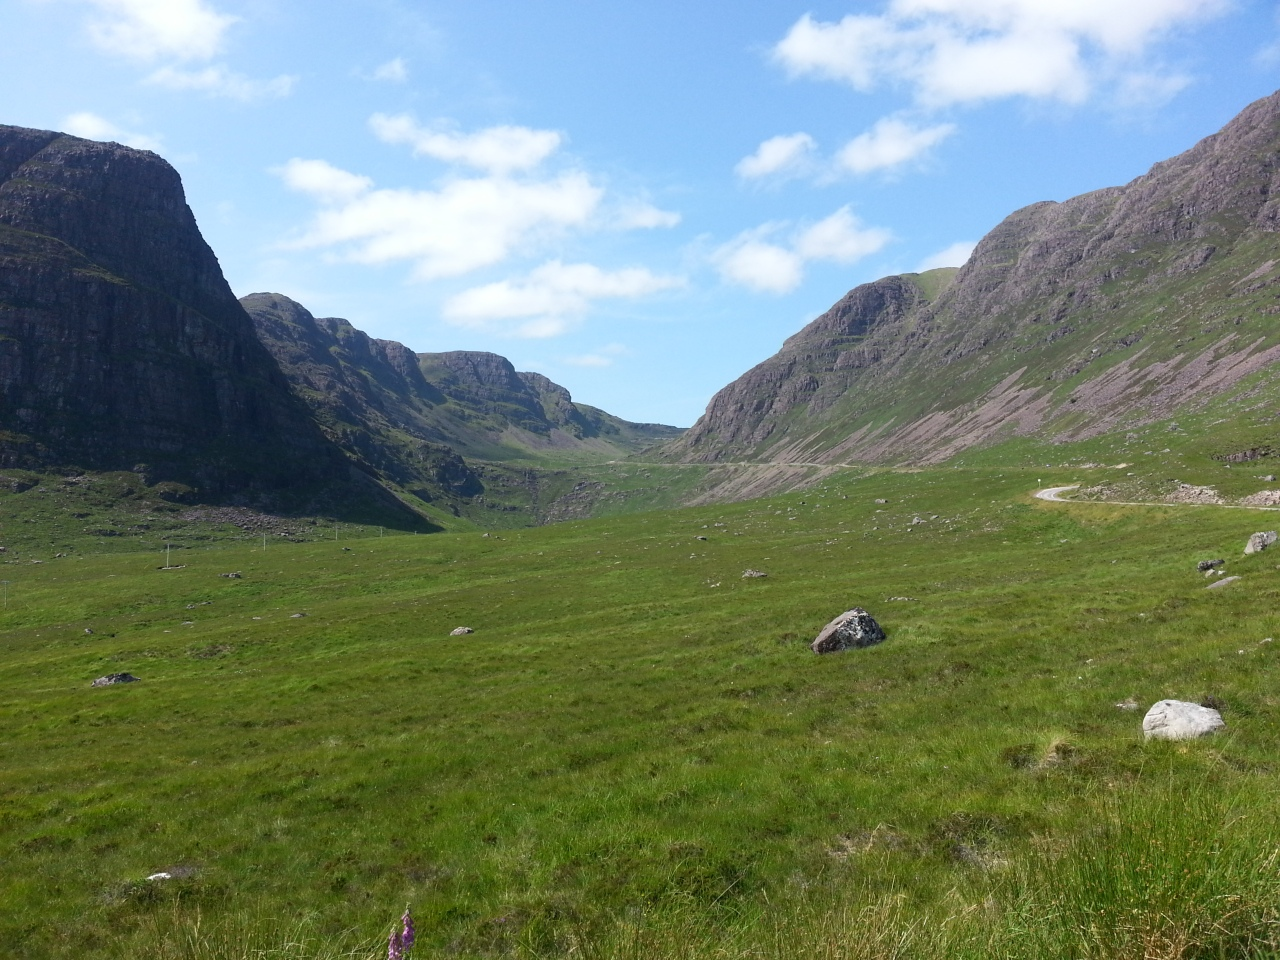 Riding through the Highlands in beautiful sunshine... reminded me of Tibet.